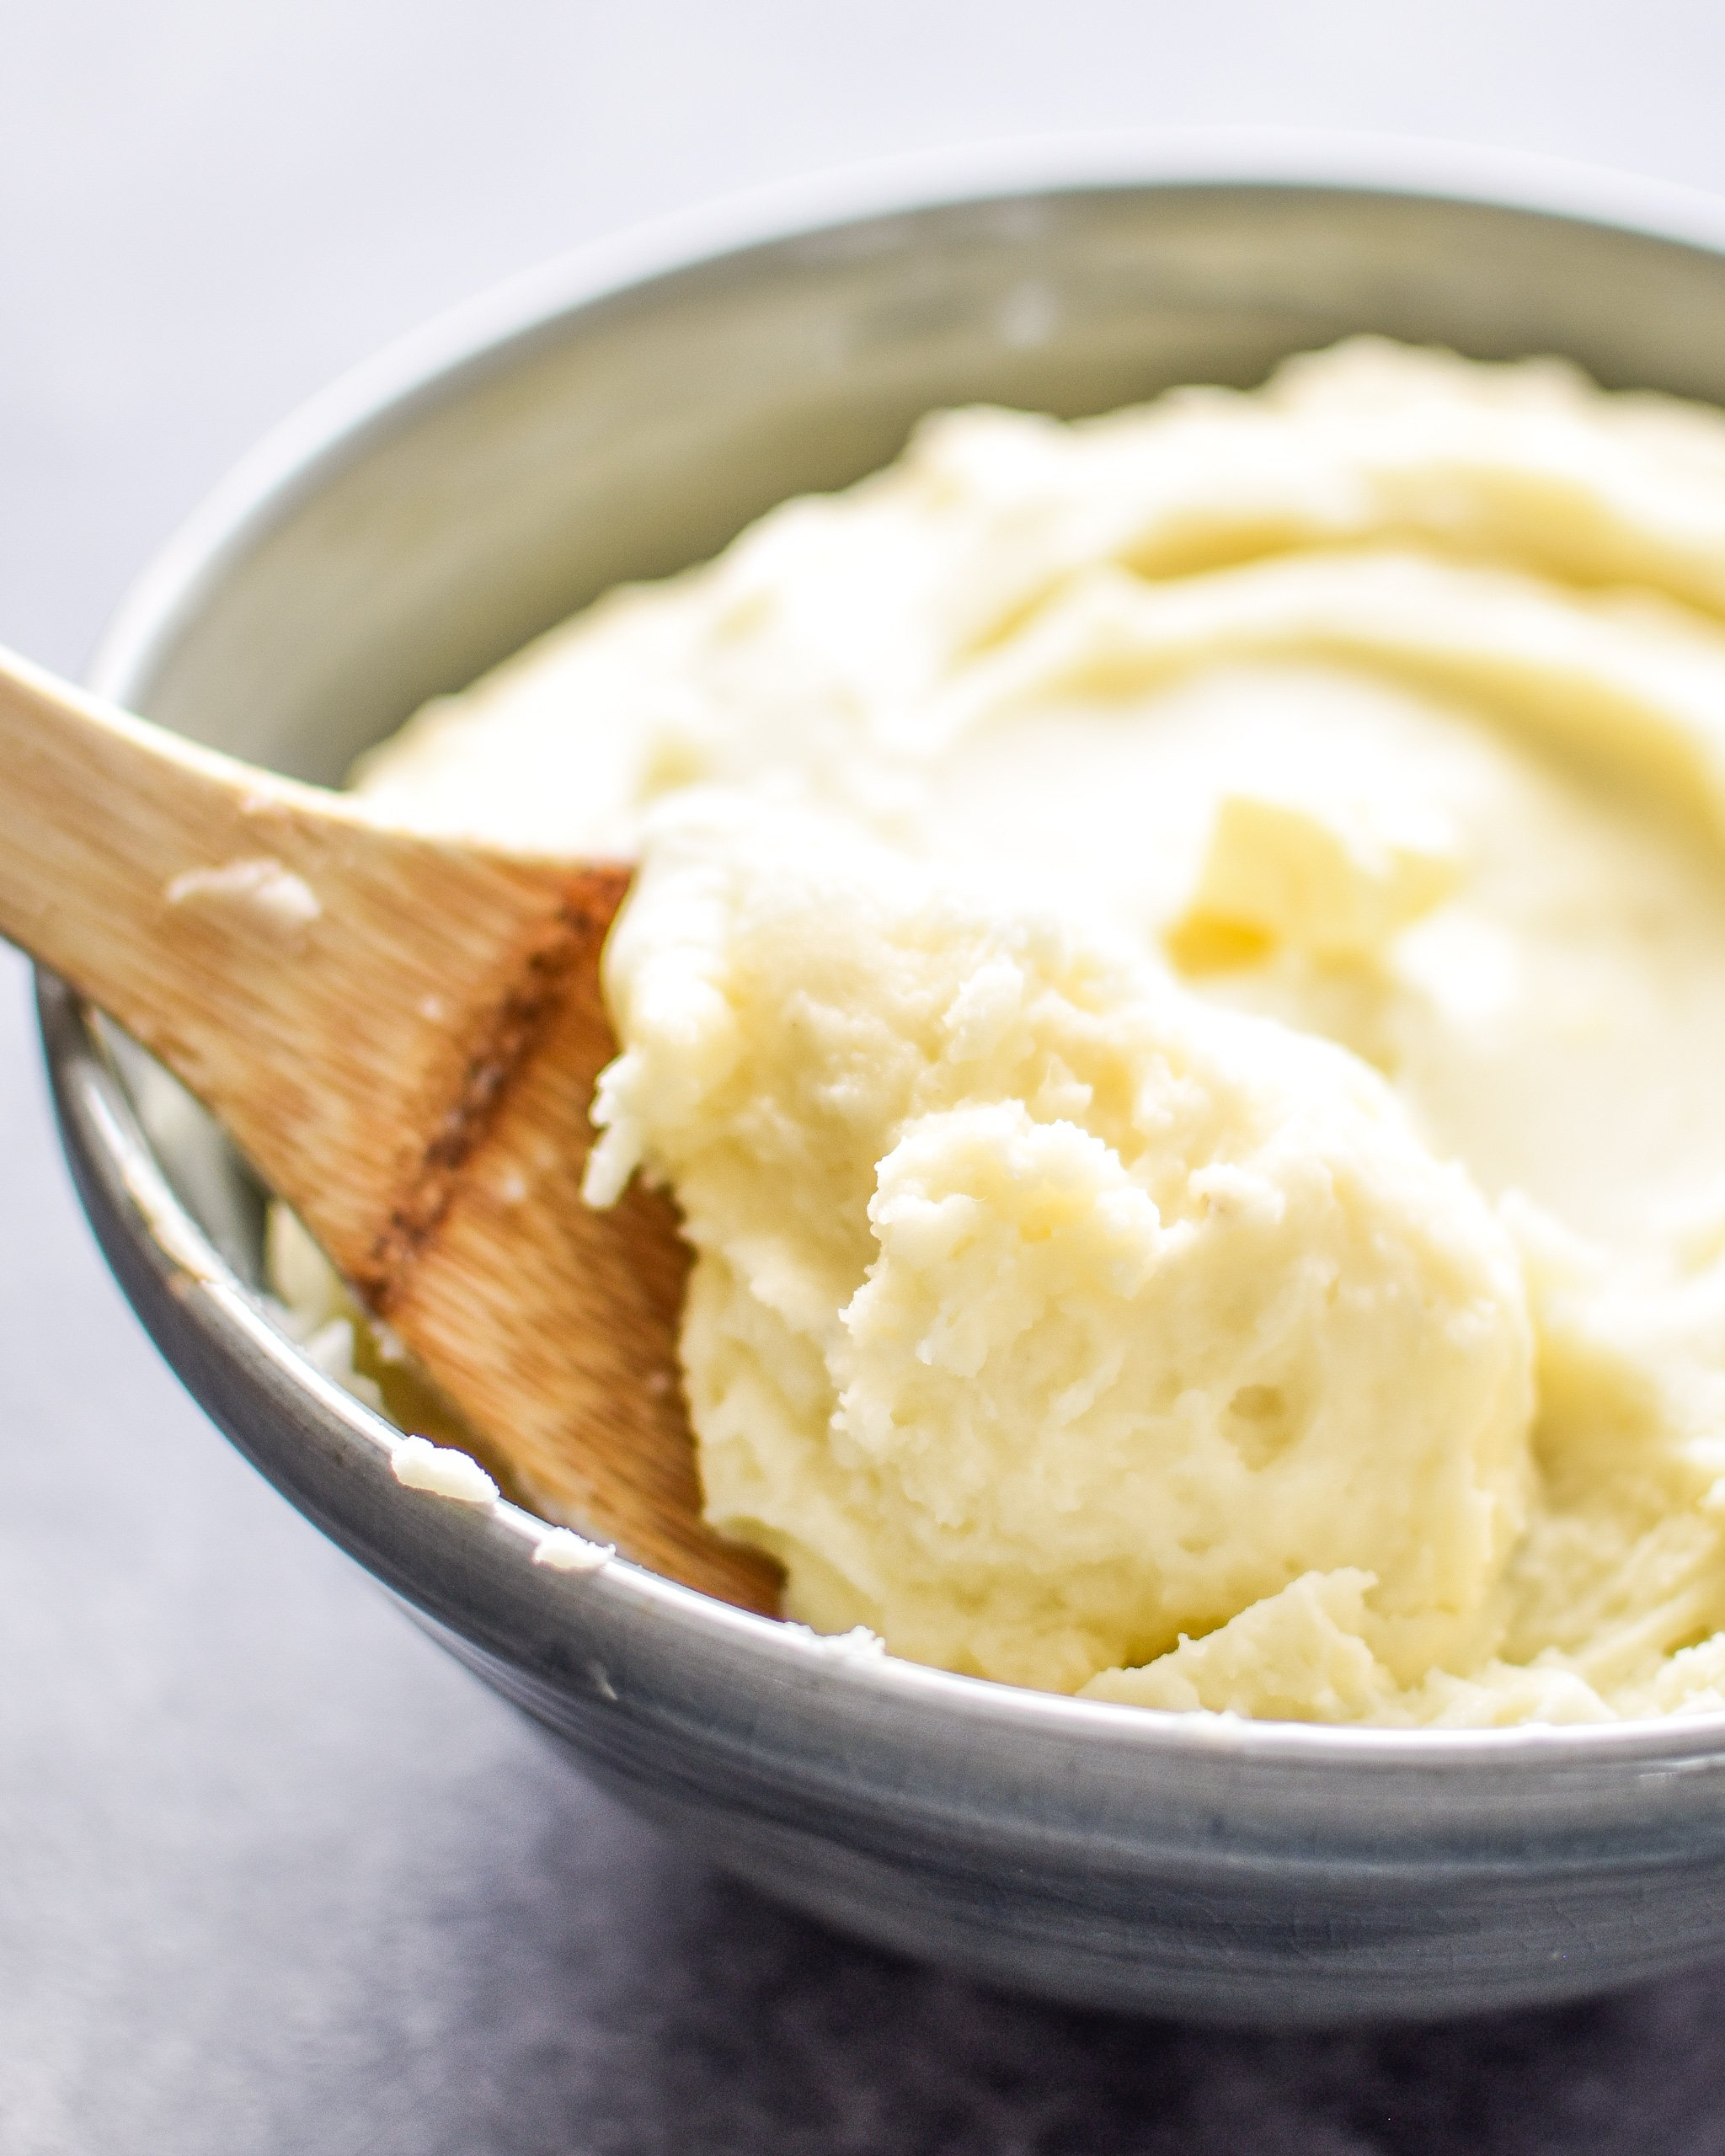 A spoonful of mashed potatoes resting in a dish of mashed potatoes.